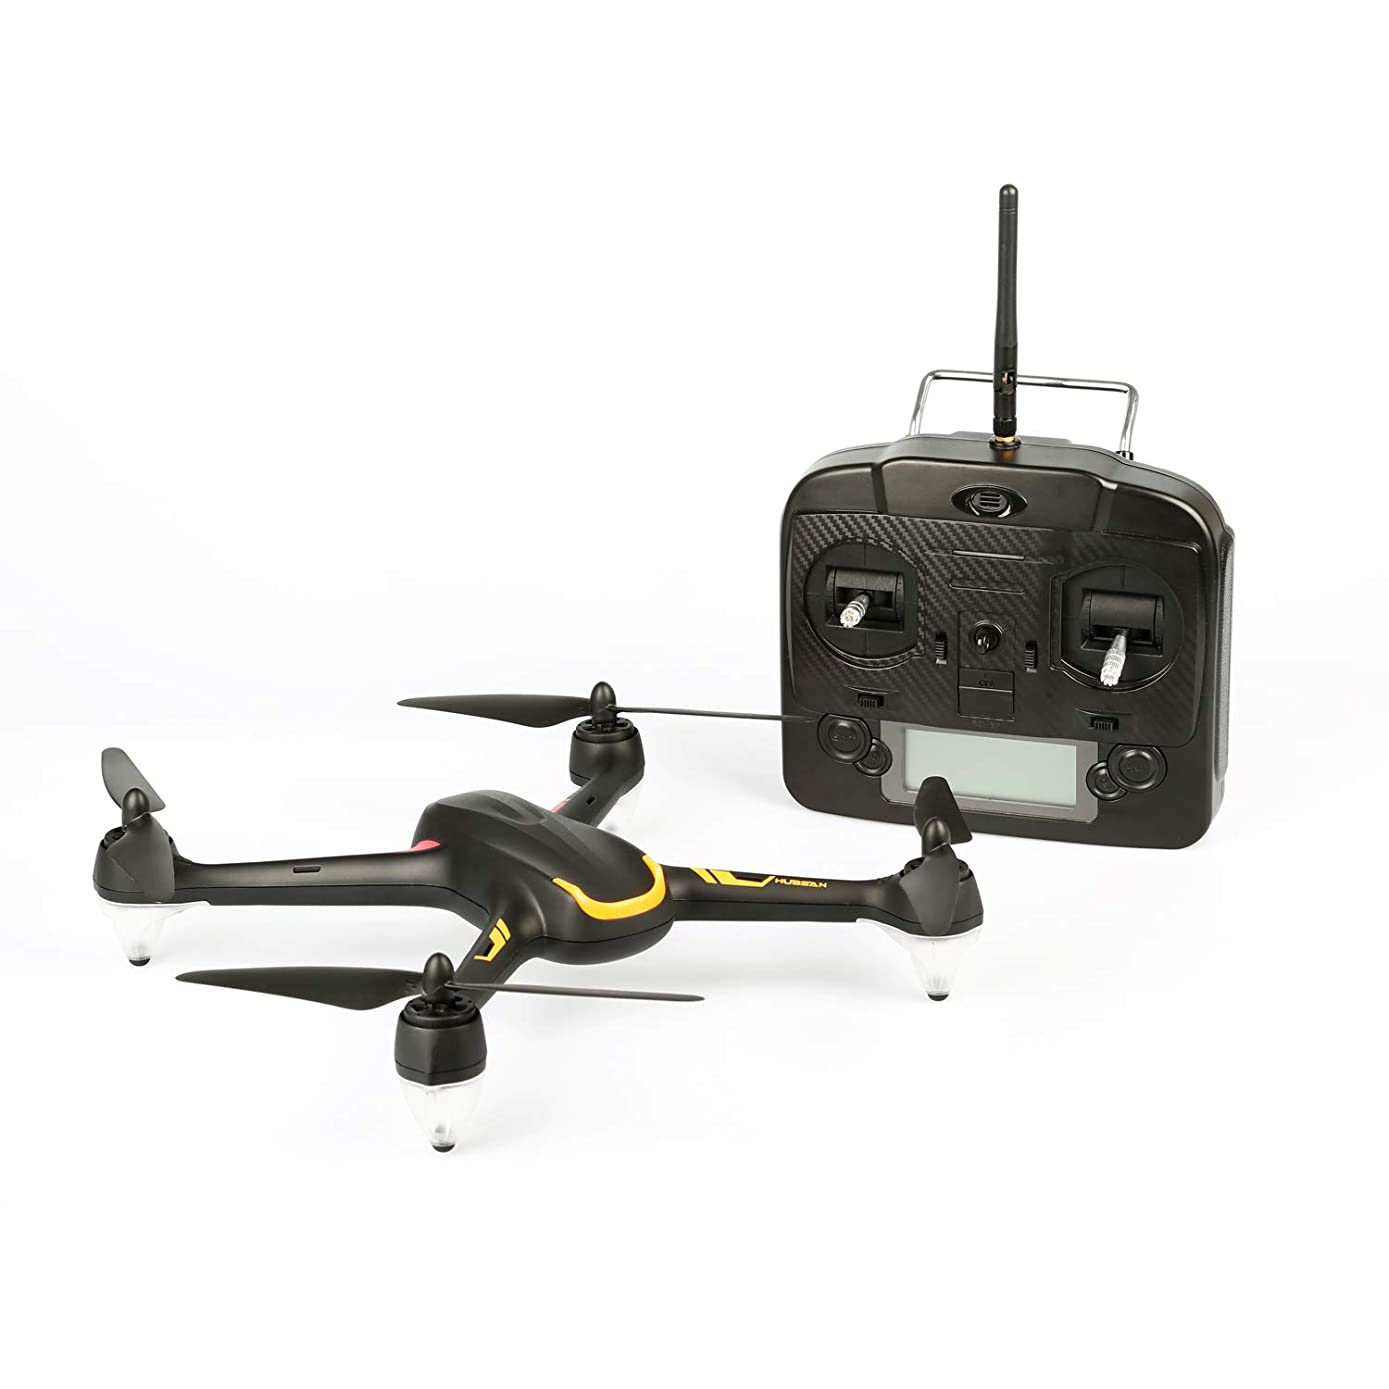 Hubsan X4 Drone with Brushless Motor 6 Axis Flips & Rolls 2.4GHz RC Quadcopter H109 RTF